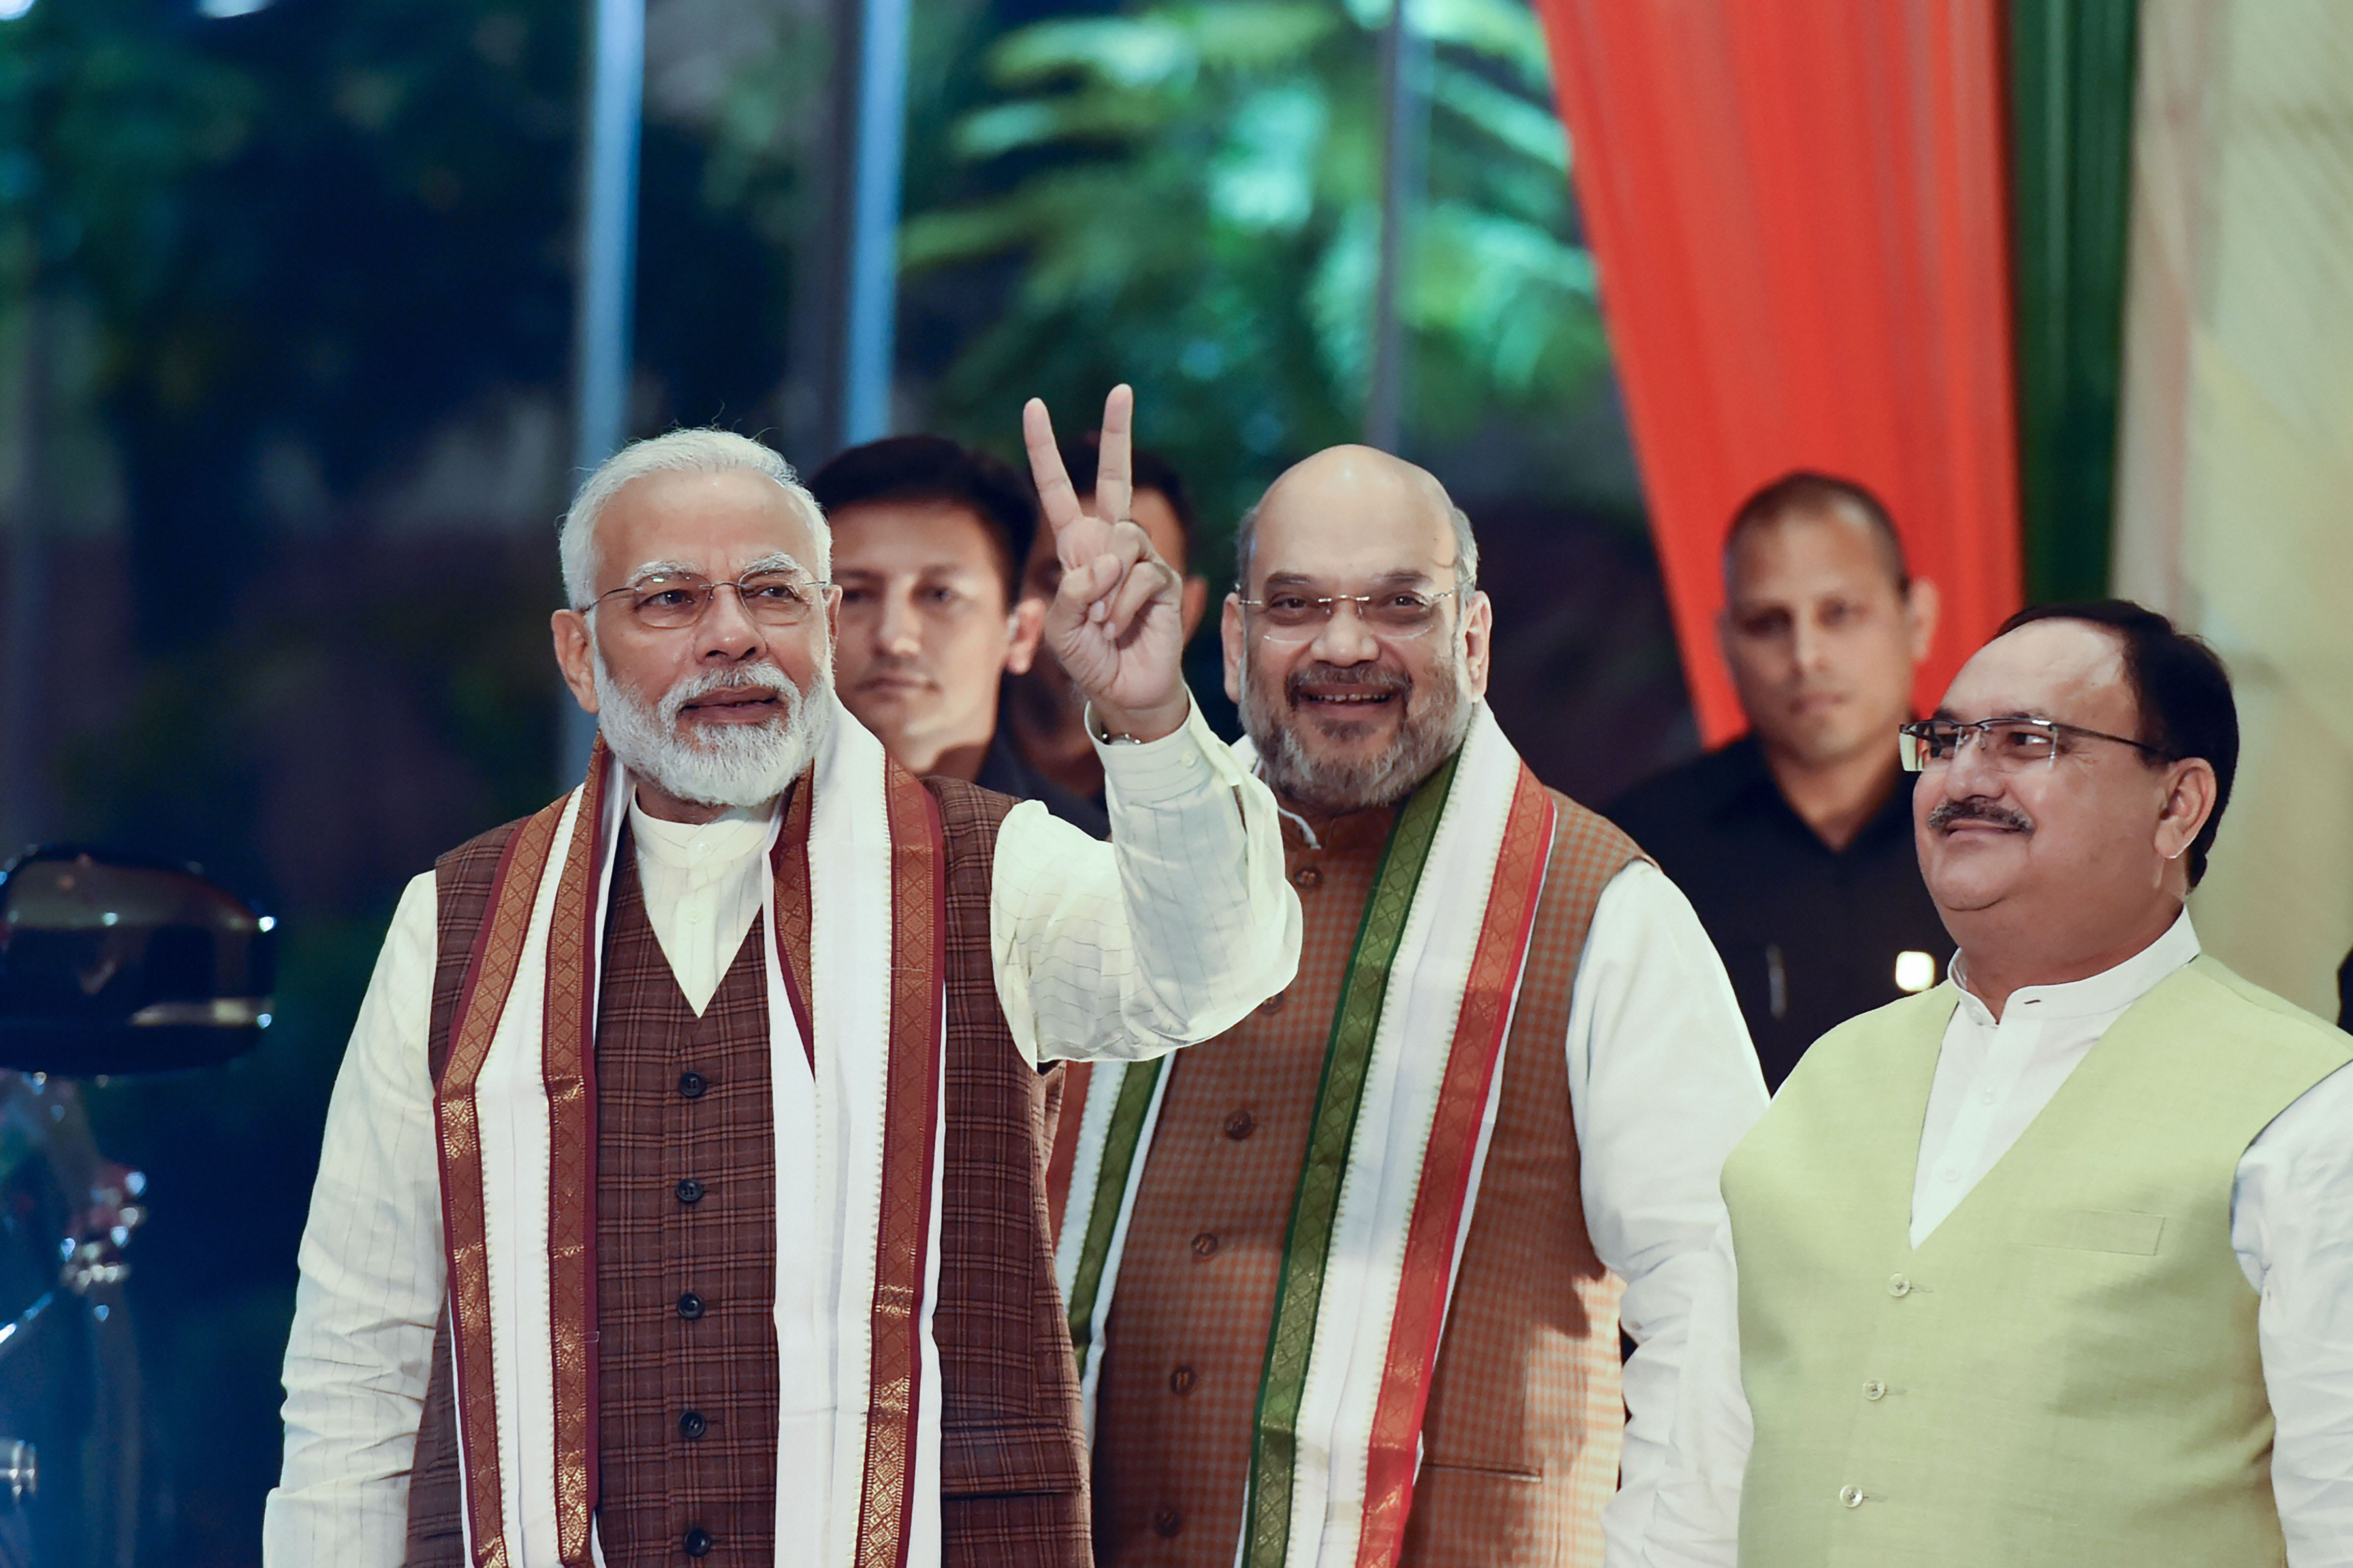 Prime Minister Narendra Modi arrives to address supporters after the results of Haryana and Maharashtra Assembly polls were declared, at BJP headquarters, in New Delhi, Thursday, October 24, 2019.